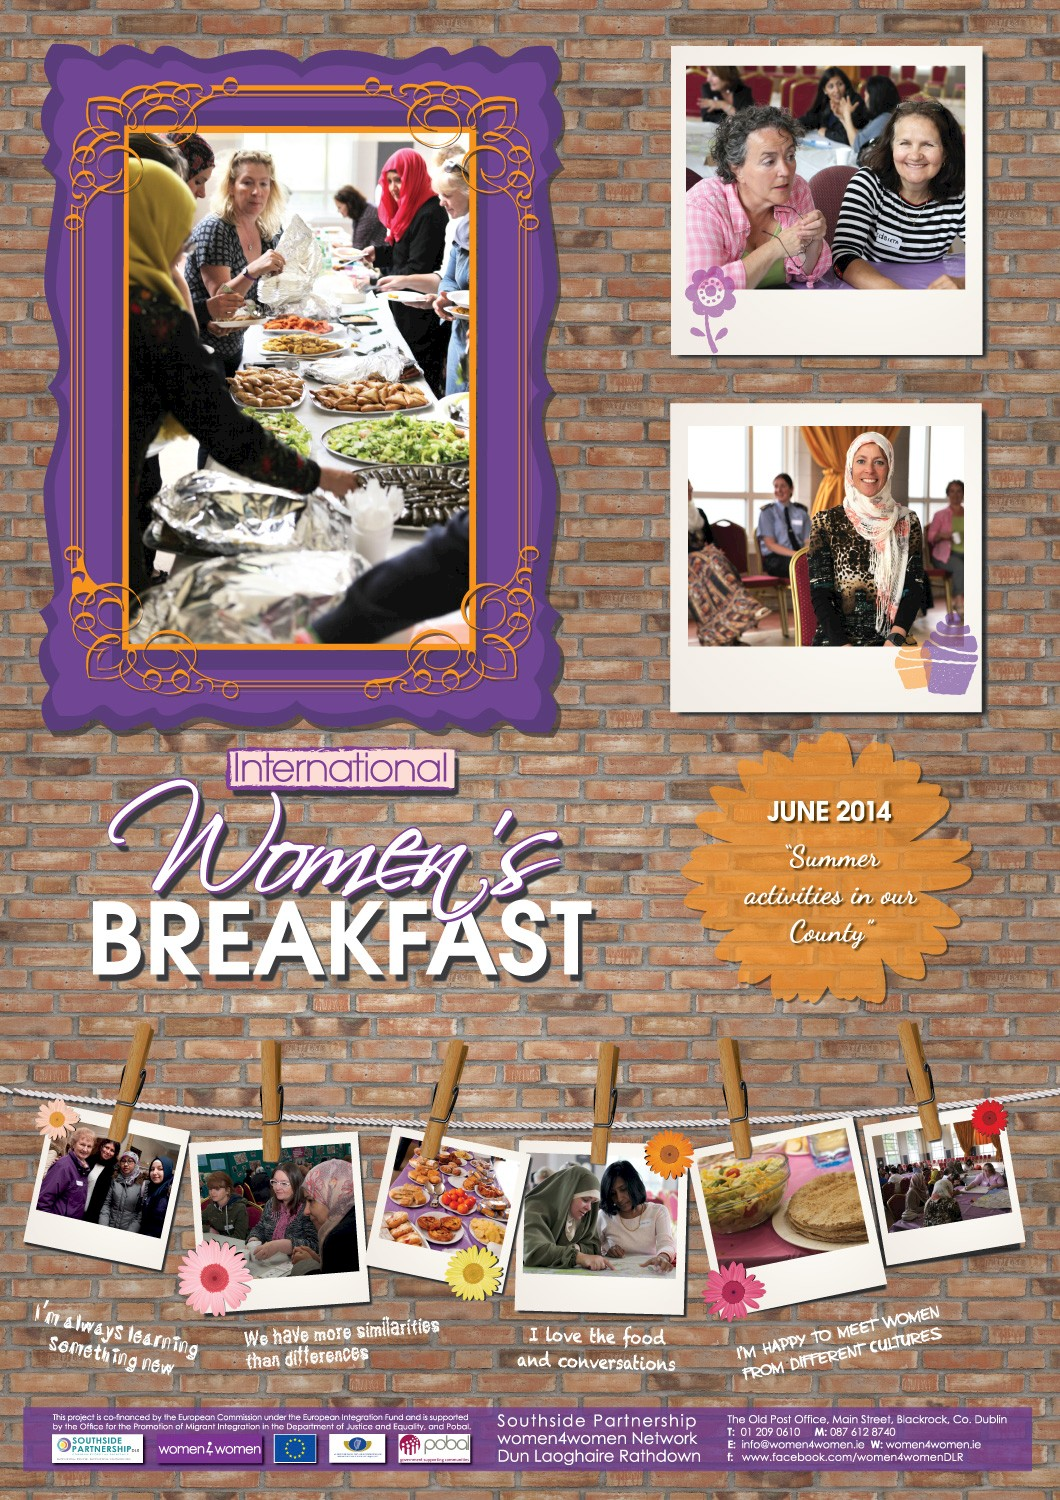 W4W-Breakfast-Photo-Poster-June'14-WEB